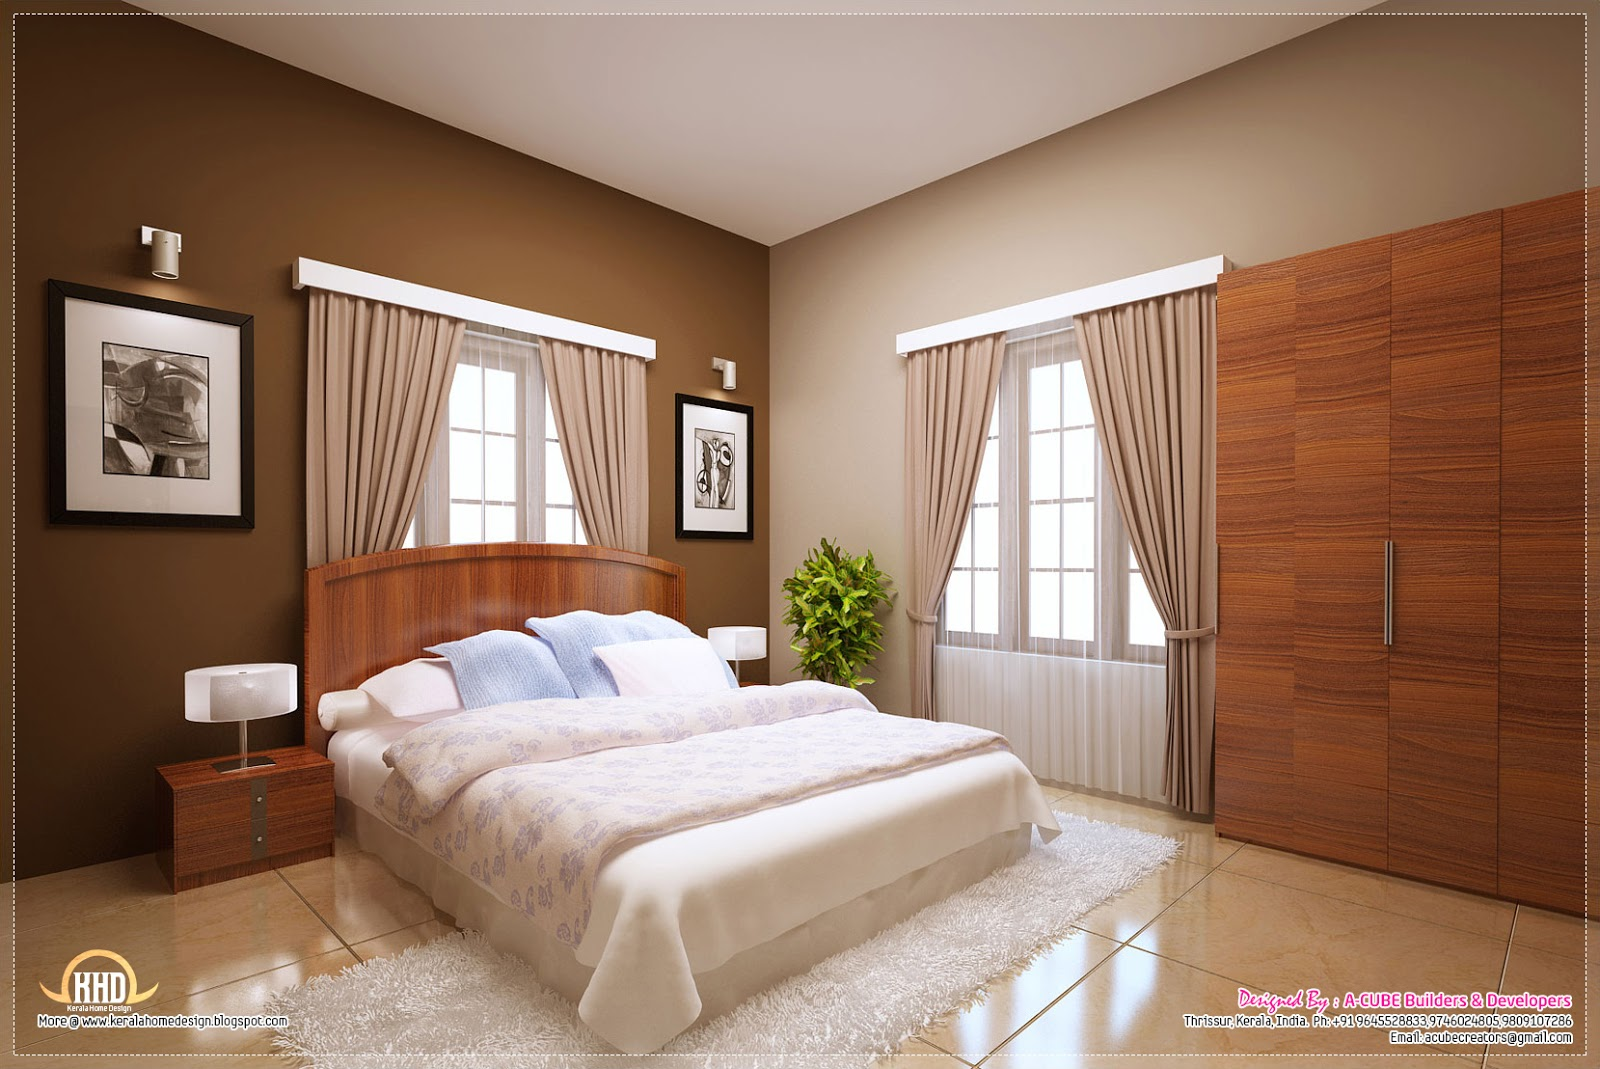 Awesome interior decoration ideas house design plans for Bedroom images interior designs